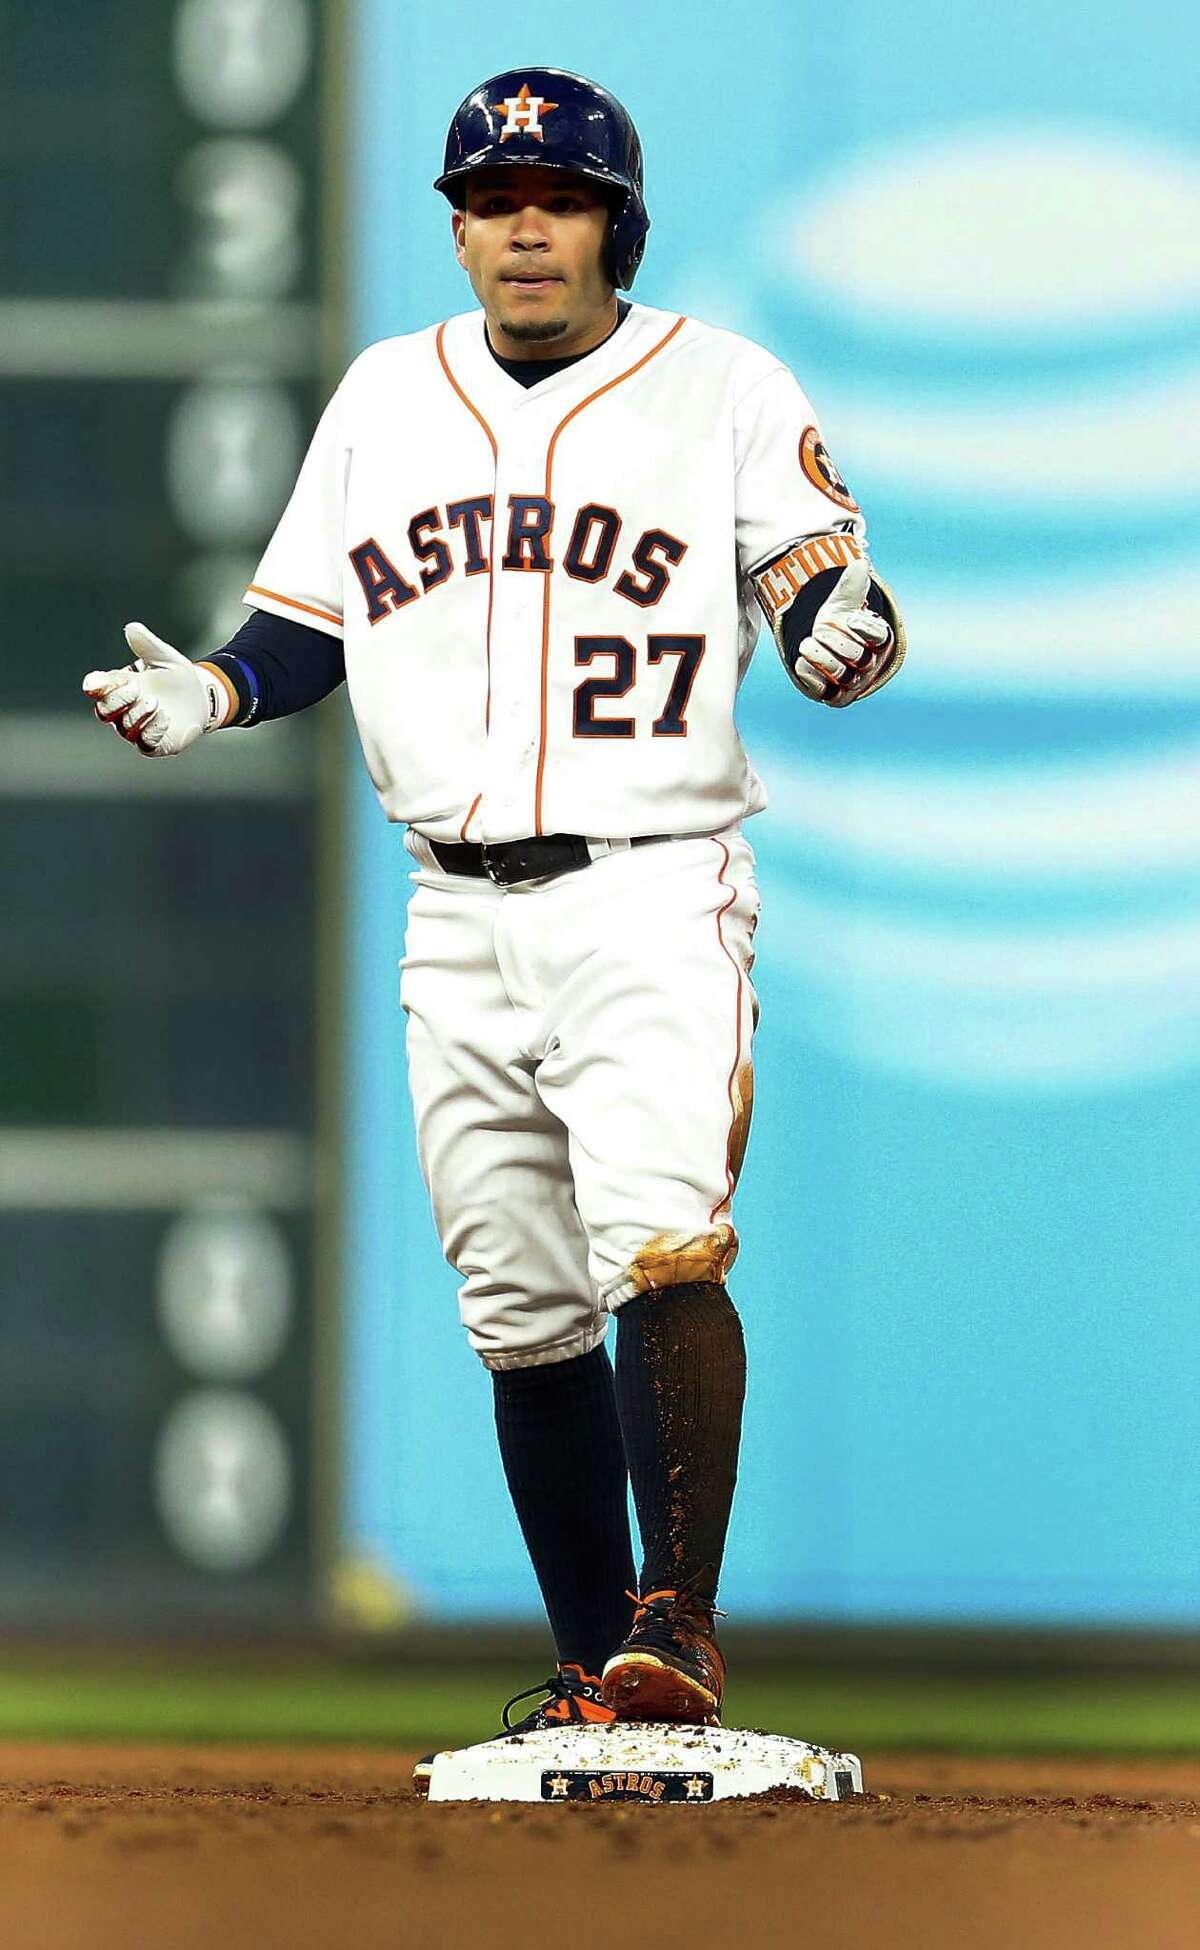 The good: Jose Altuve On a scuffling offense, he was a bright spot in April, hitting a team-best .305 while adding an unexpected six homers and pacing the squad with nine stolen bases.